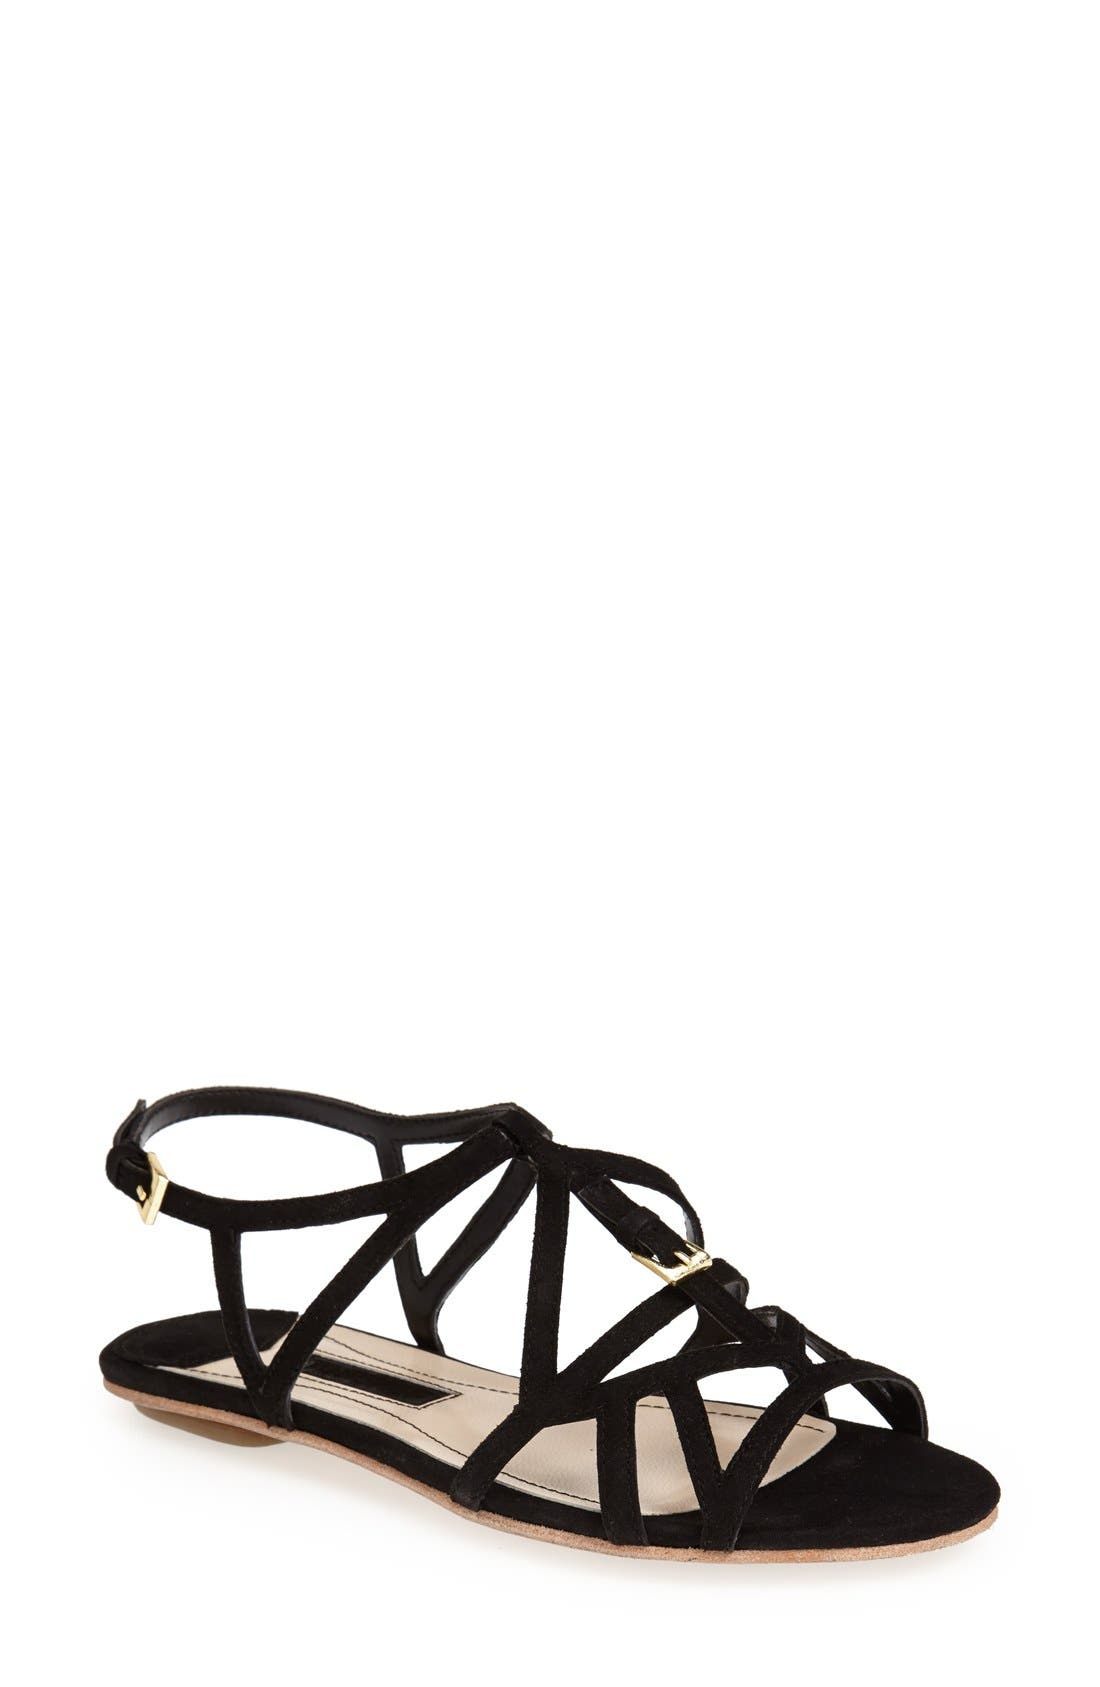 Alternate Image 1 Selected - Topshop 'Fifi' Sandal (Women)